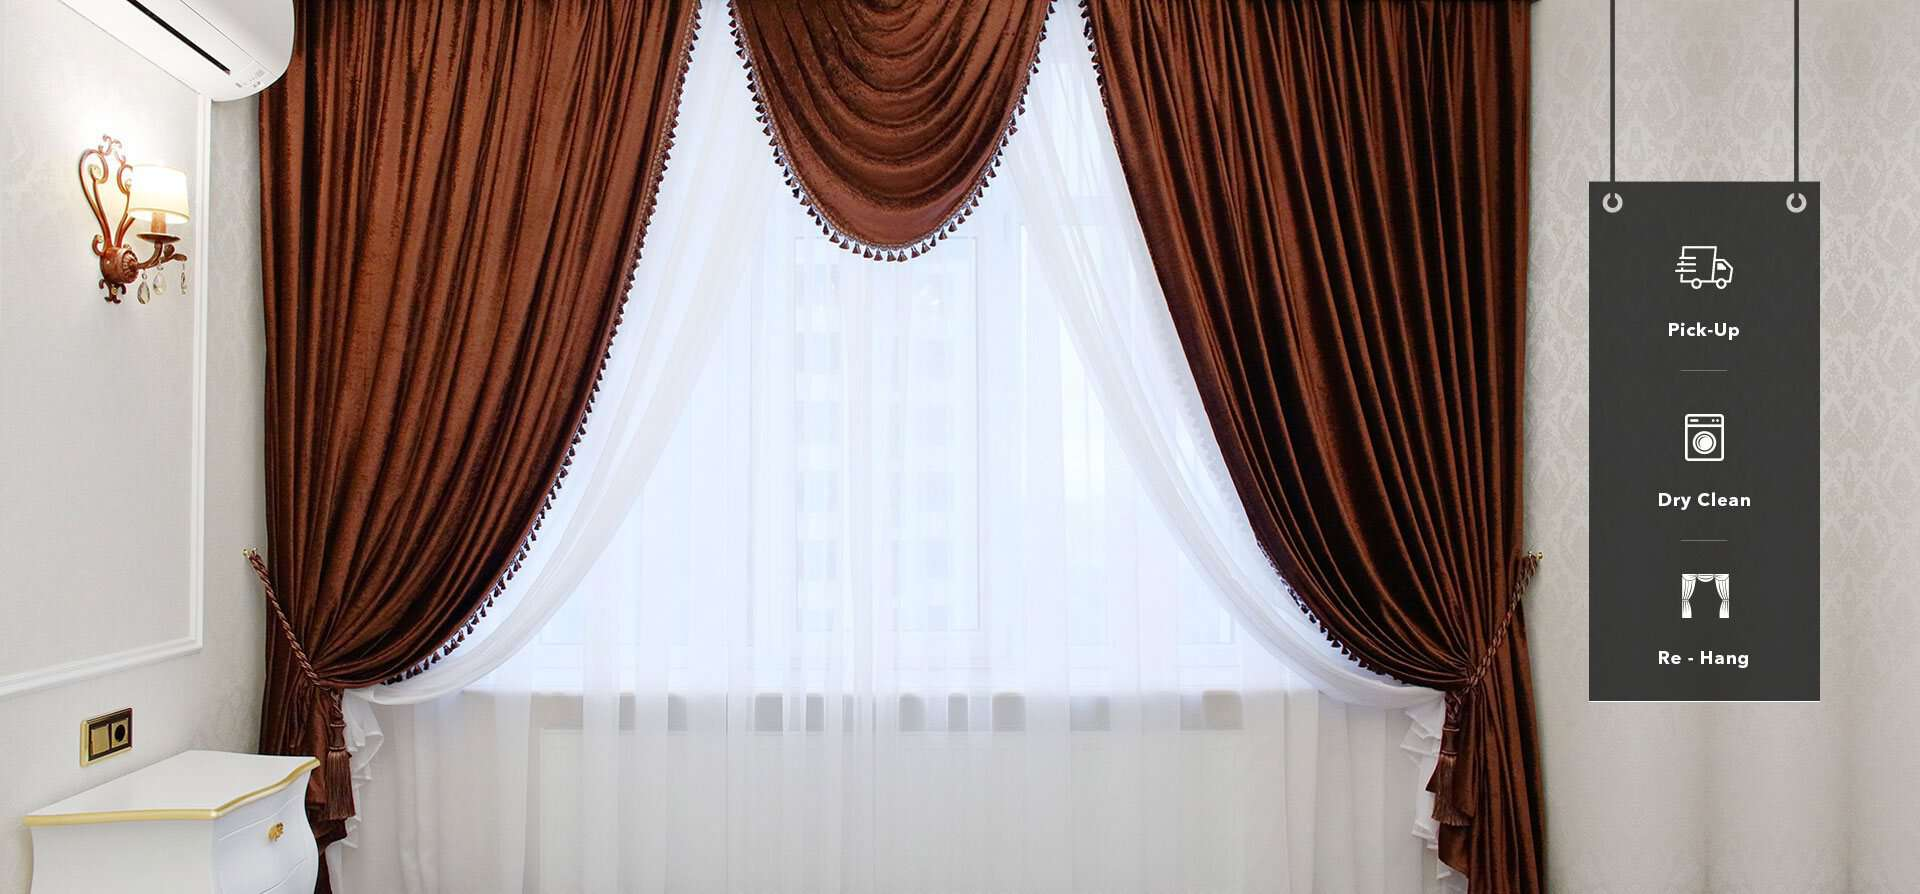 Curtain Cleaning Sydney Curtain Cleaning Service Curtain Cleaners Melbourne Dr Drapes